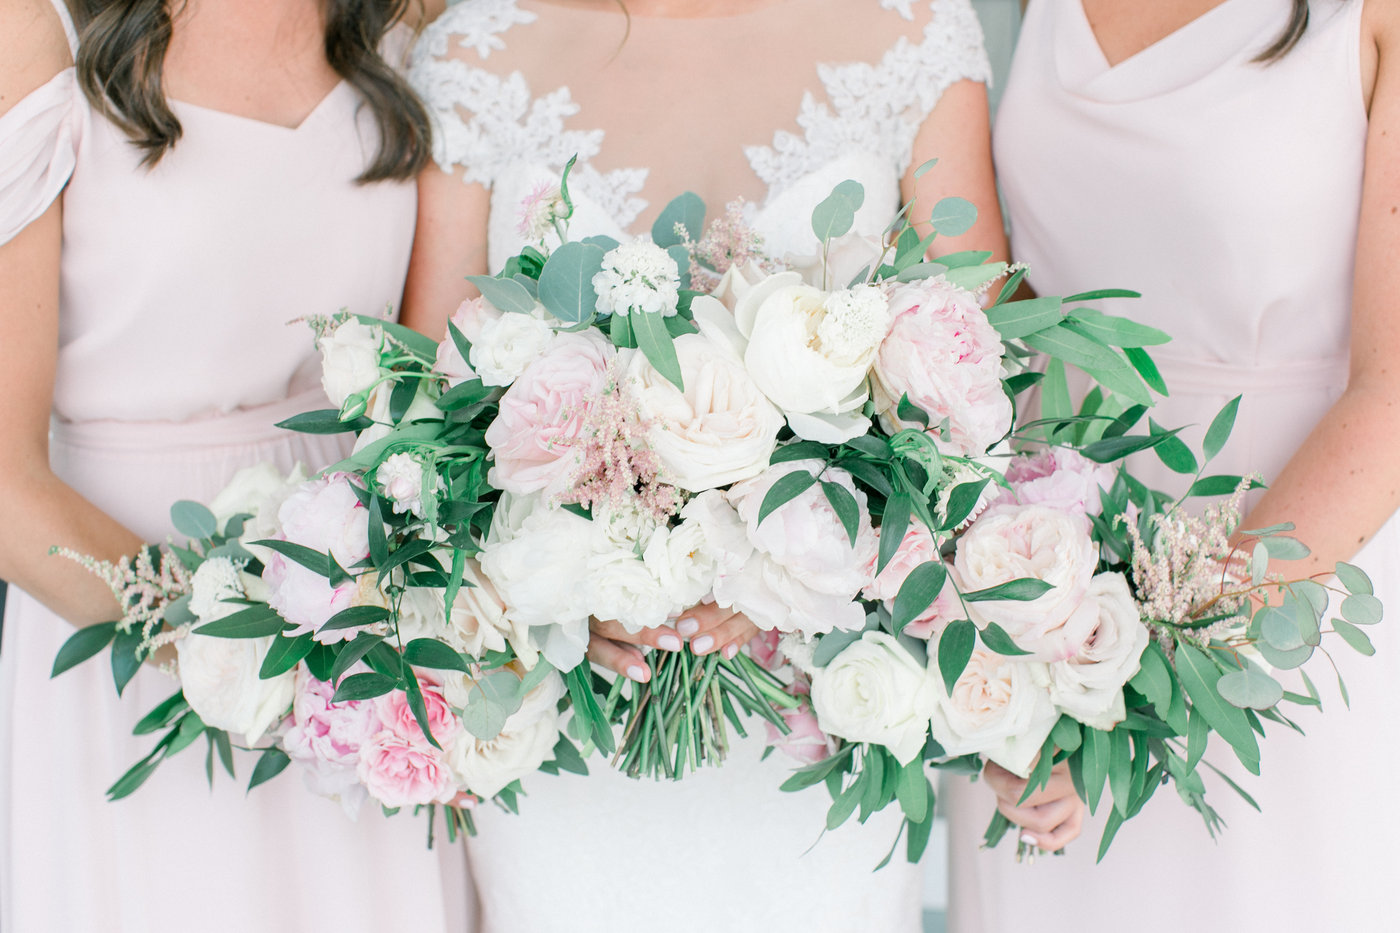 Shorehaven Golf Club wedding bridesmaids bridal bouquets blush peonies garden roses.jpg